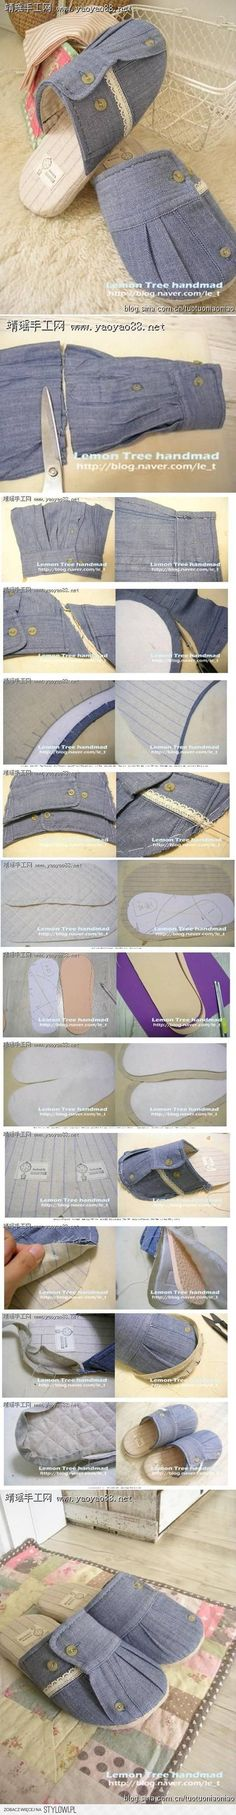 DIY Old Clothes Cuff Slipper DIY Projects | UsefulDIY.c… na Stylowi.pl